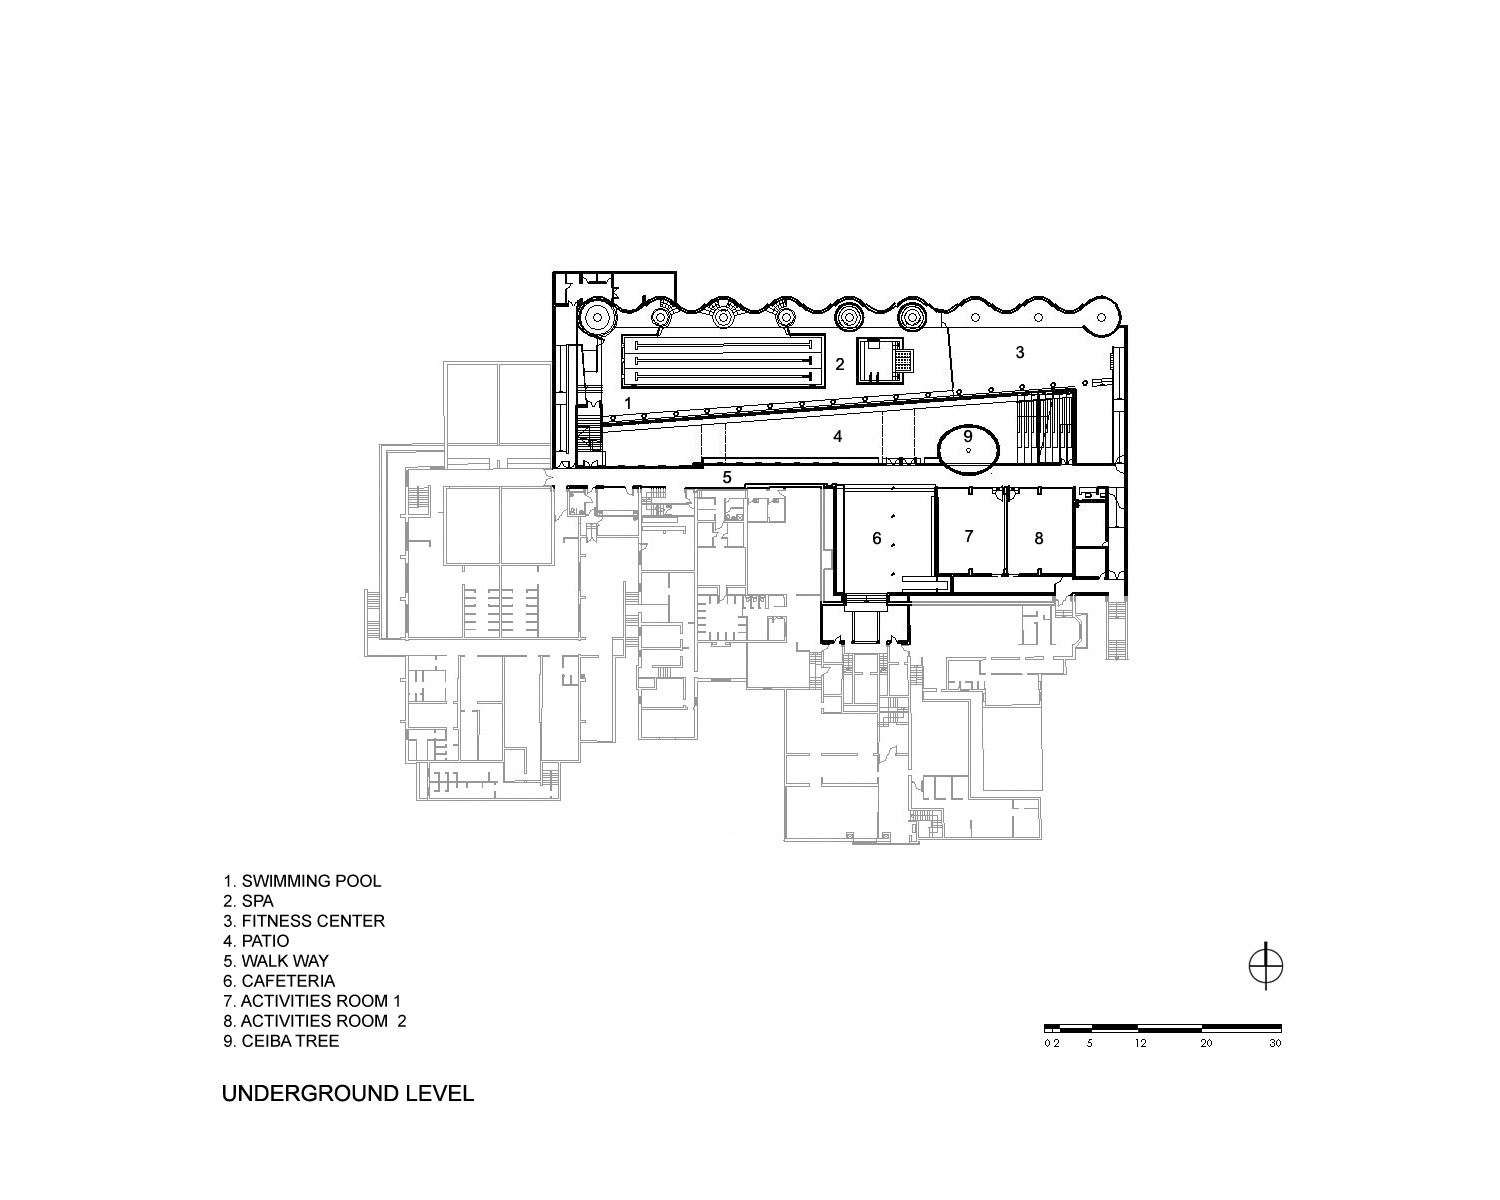 Gallery Of P W C C Spa Fitness Center Plan